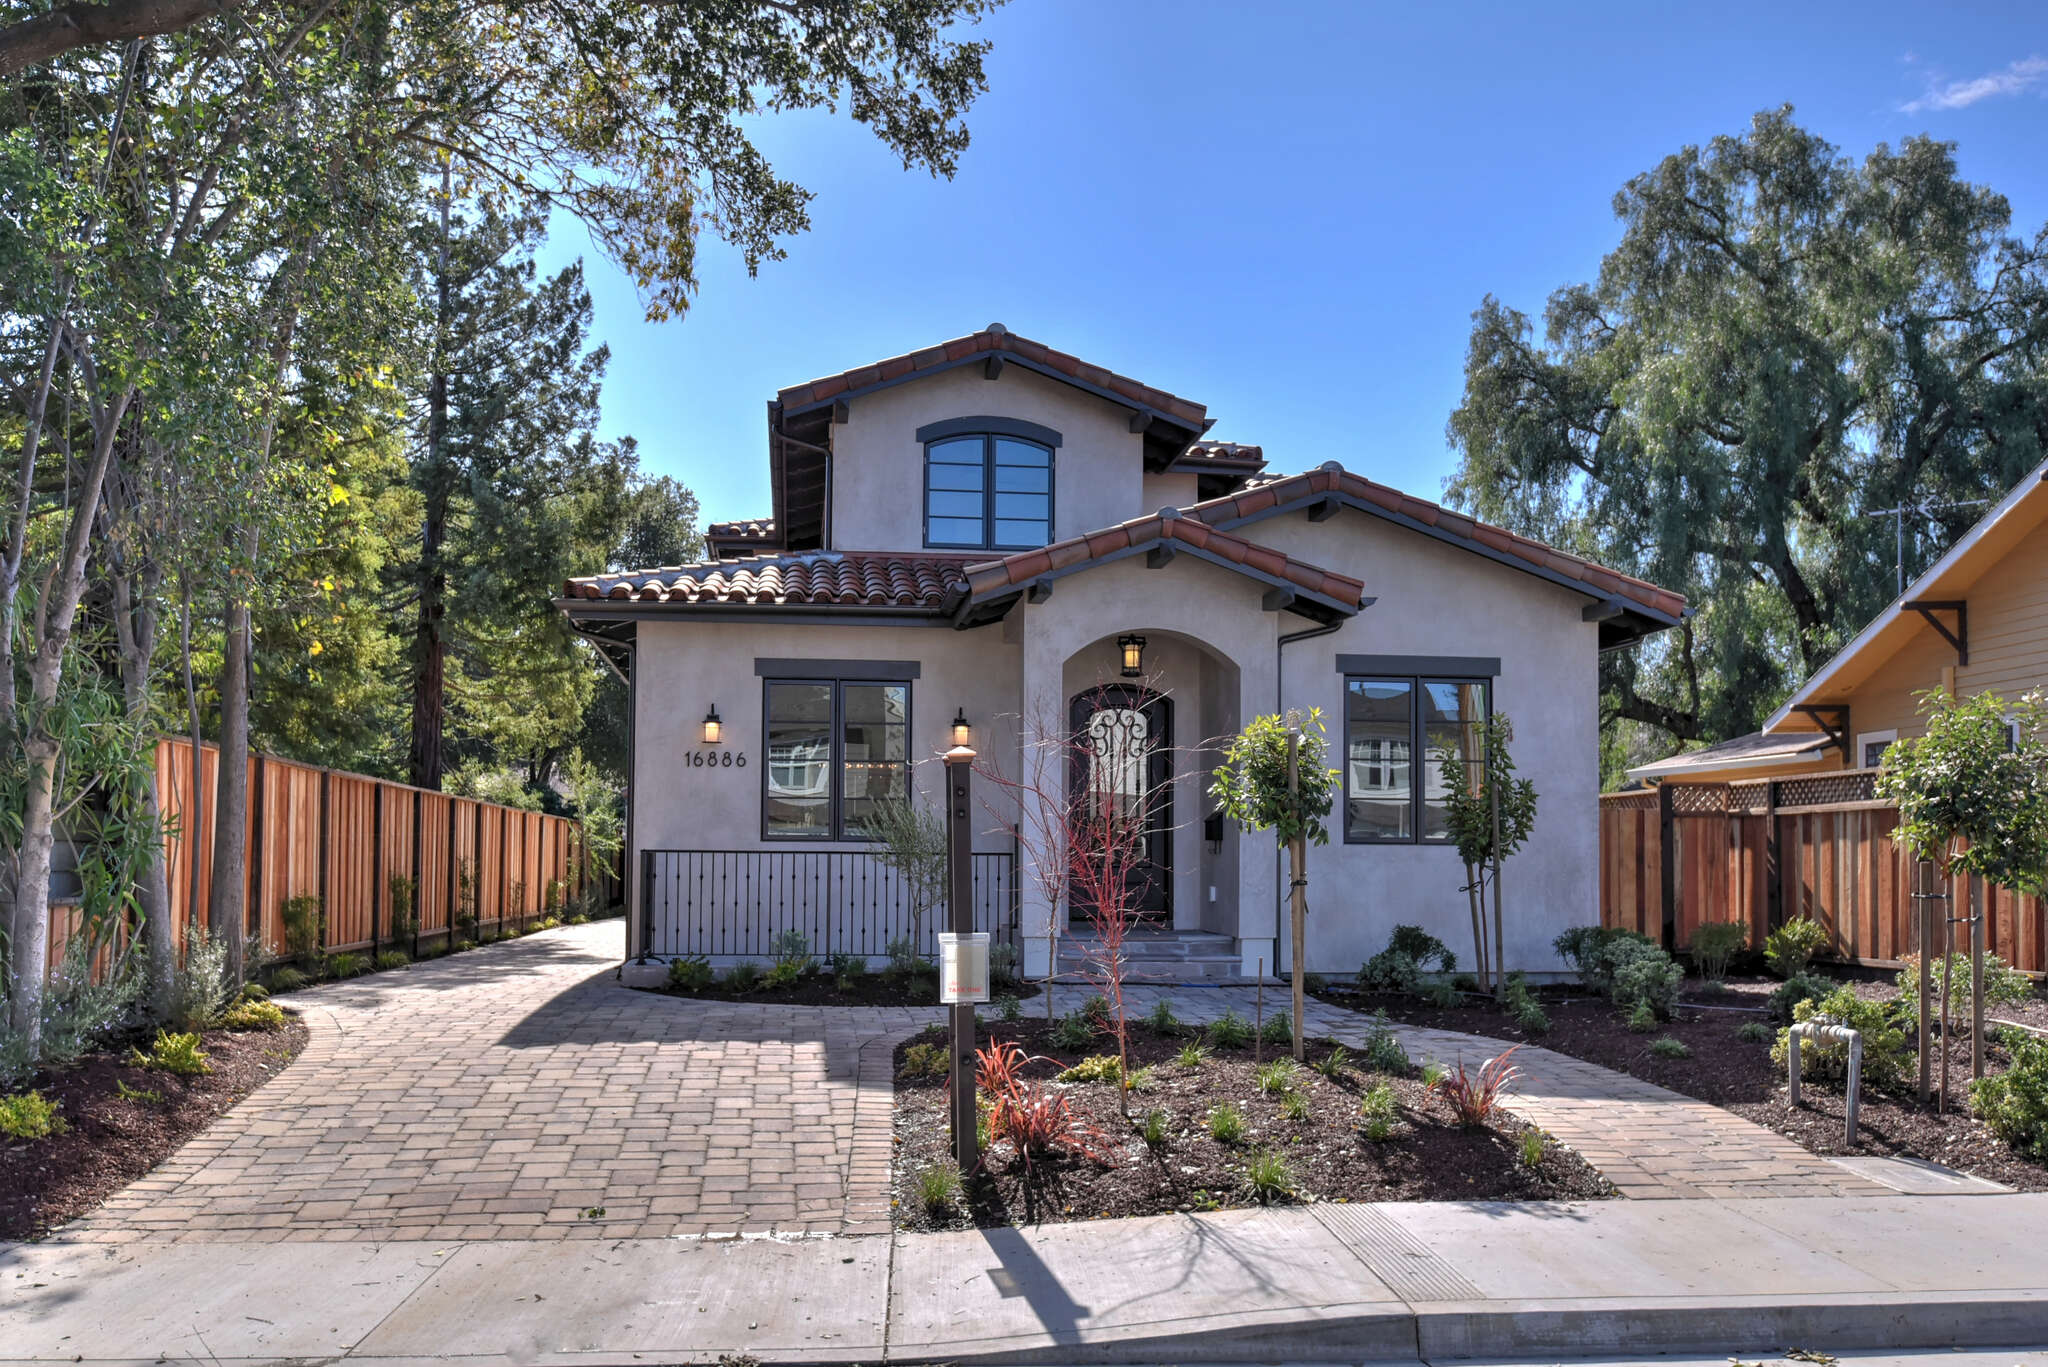 Single Family for Sale at 16886 Mitchell Ave Los Gatos, California 95032 United States